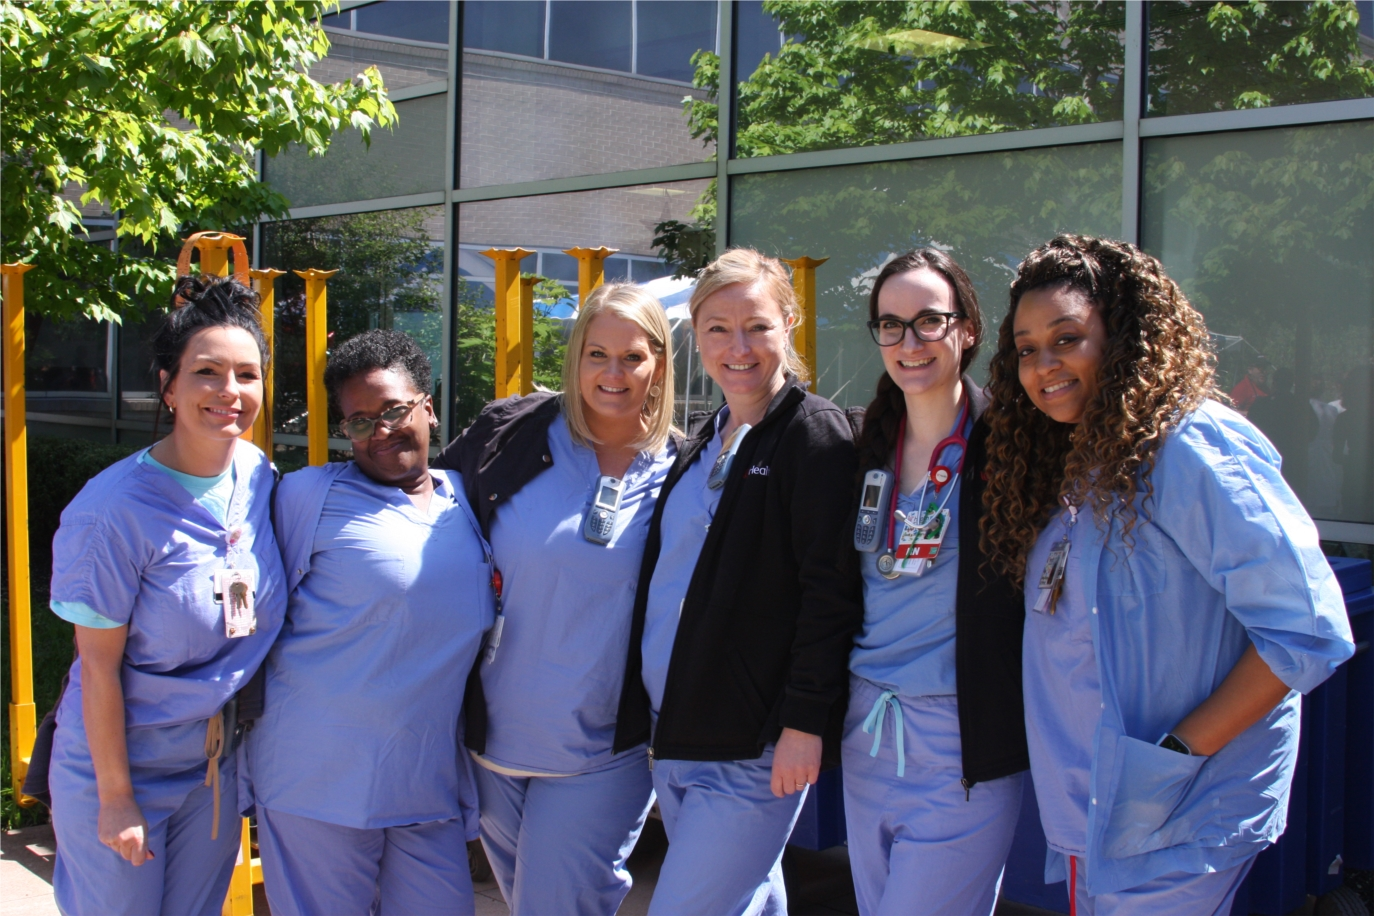 Summer picnics for West Chester Hospital staff are fun events that allow fellowship and camaraderie during busy work days.